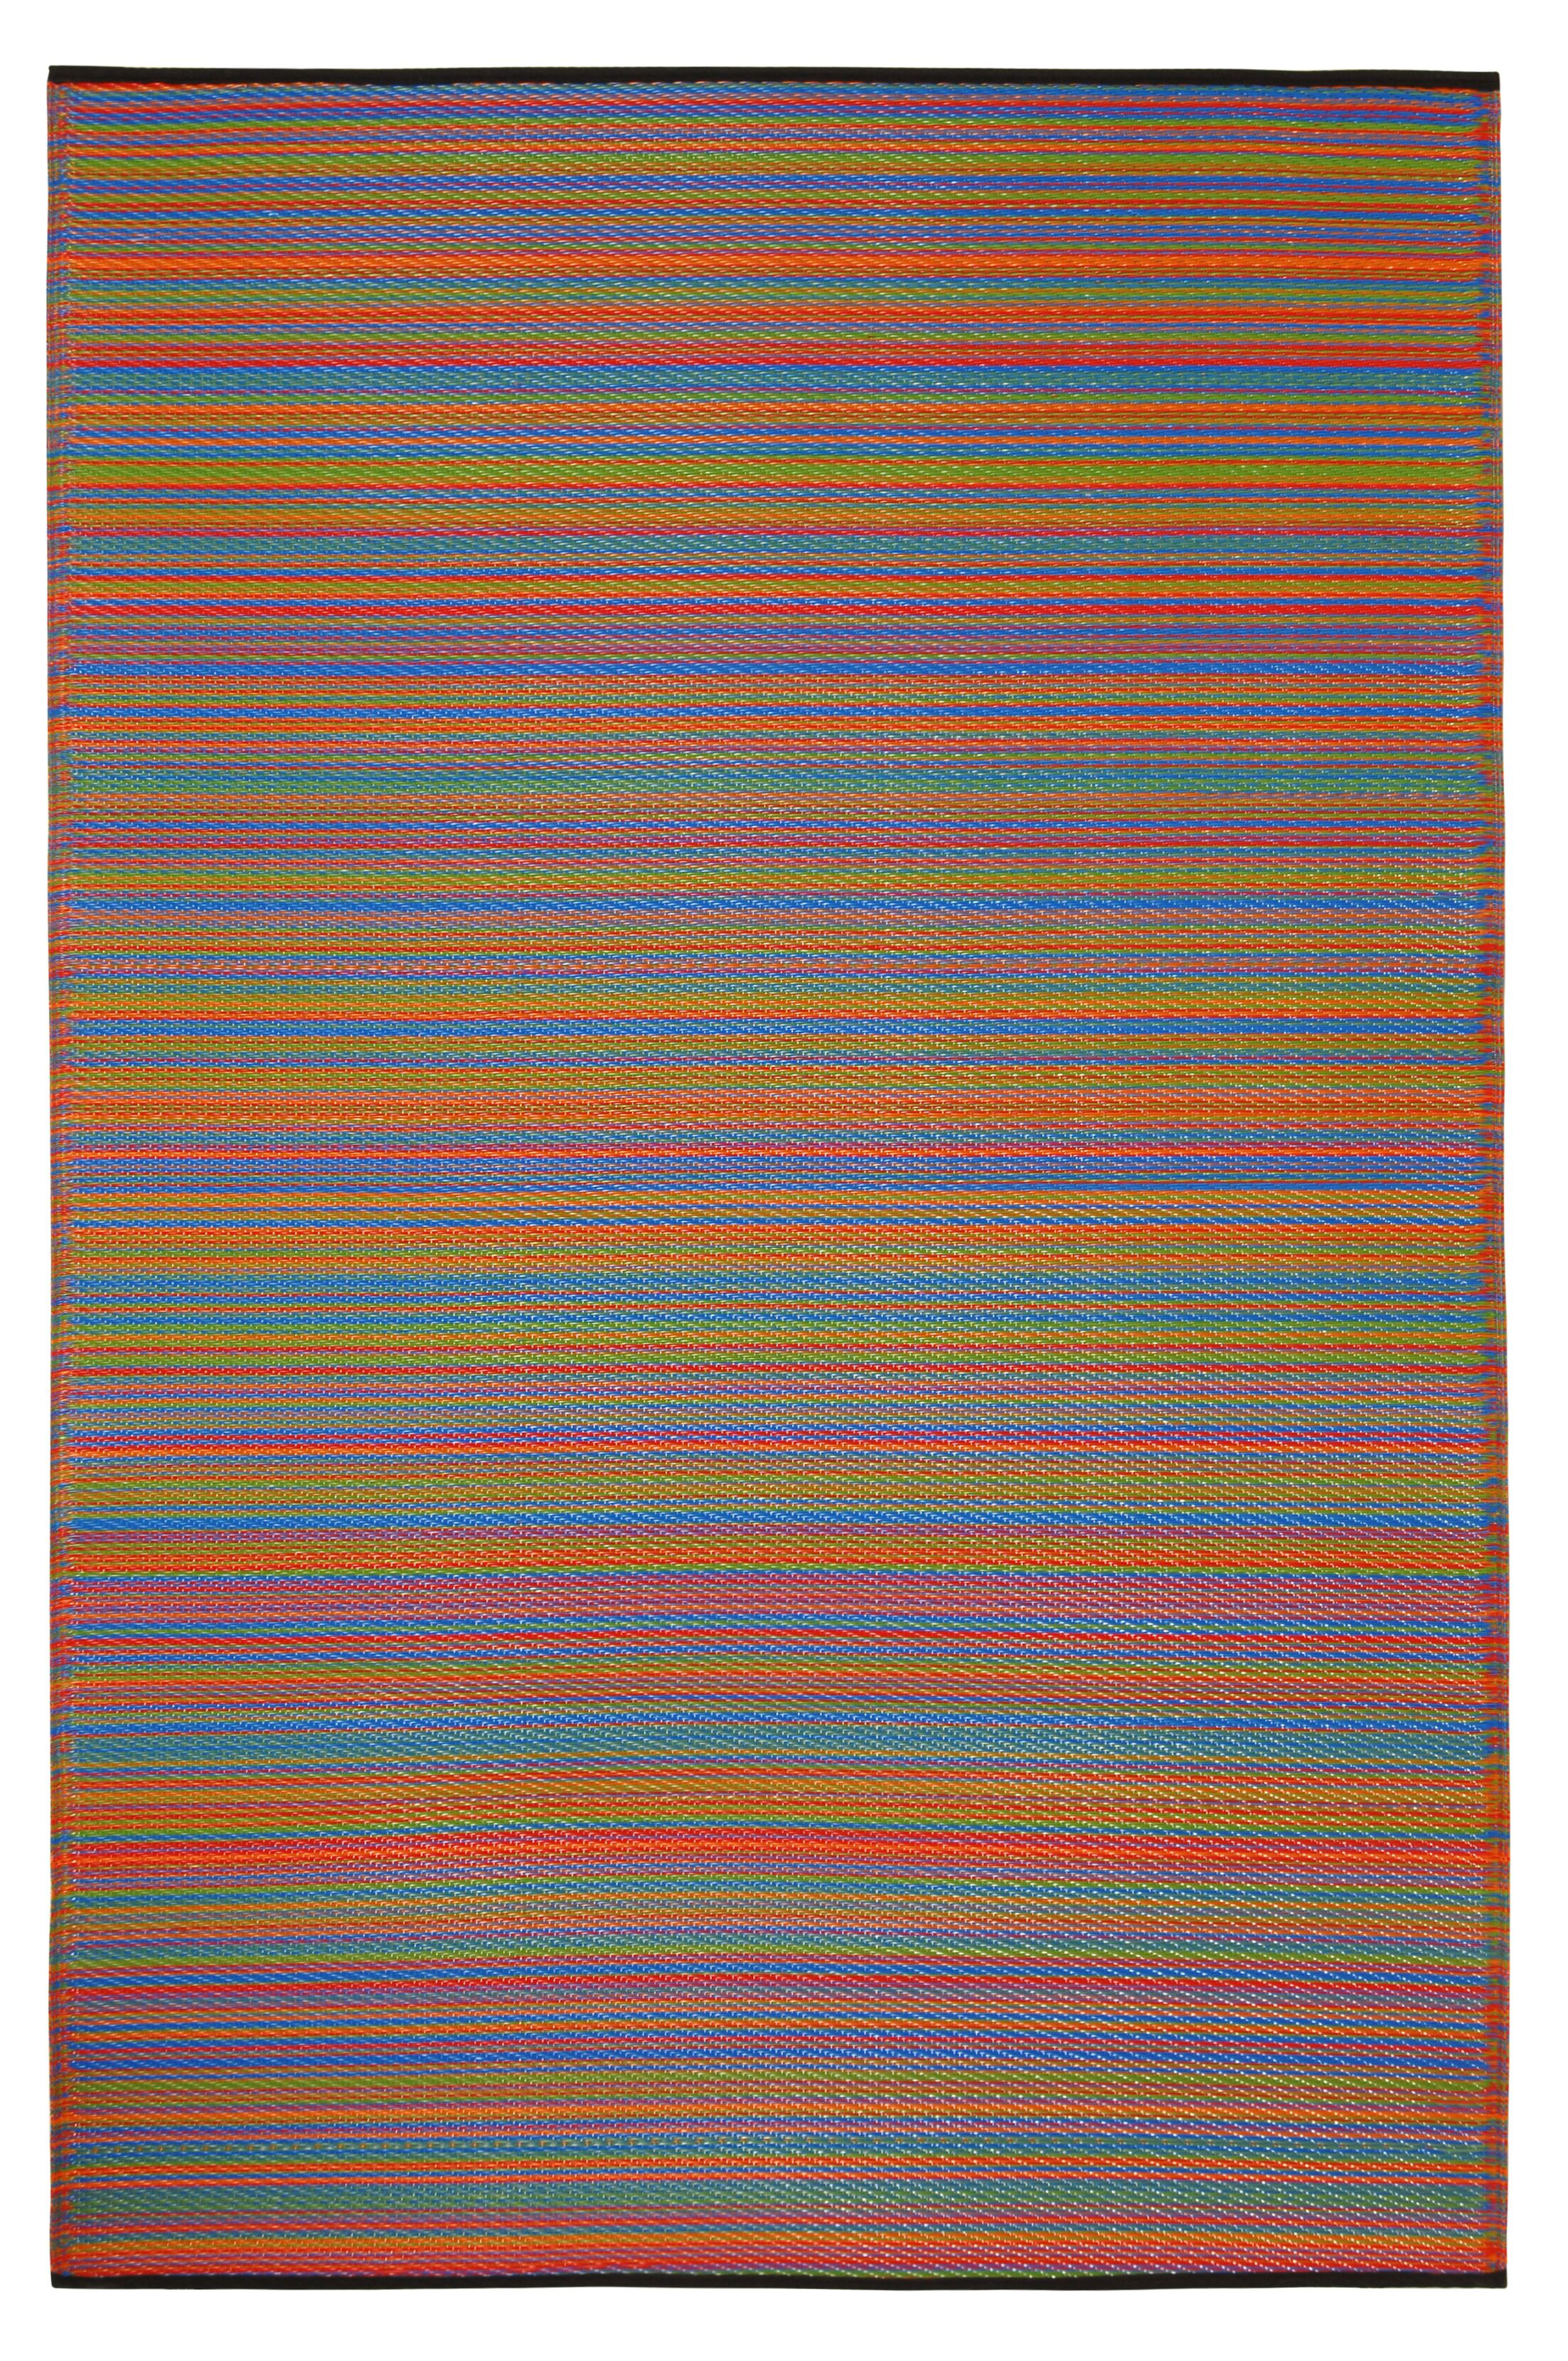 Raub Hand Woven Yellow/Red Indoor/Outdoor Area Rug Rug Size: Round 8'